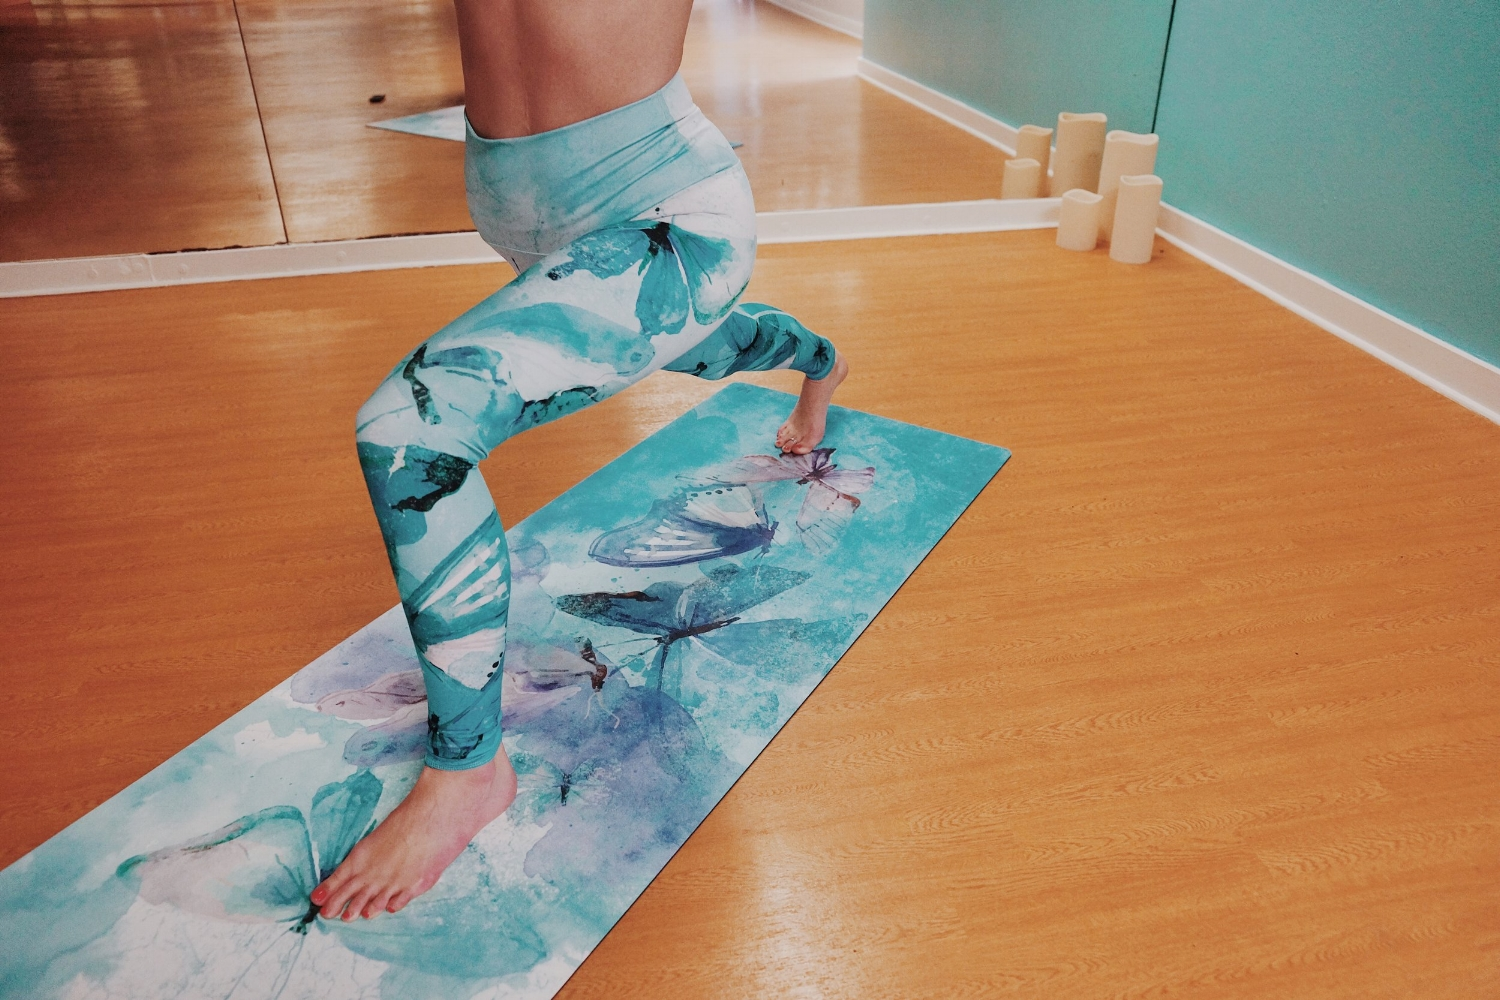 - MIKA MATSDid you know that all of our mats are 100% biodegradable and eco-friendly? So you can do your part to help the planet AND get in a great practice. We think that's a win-win.